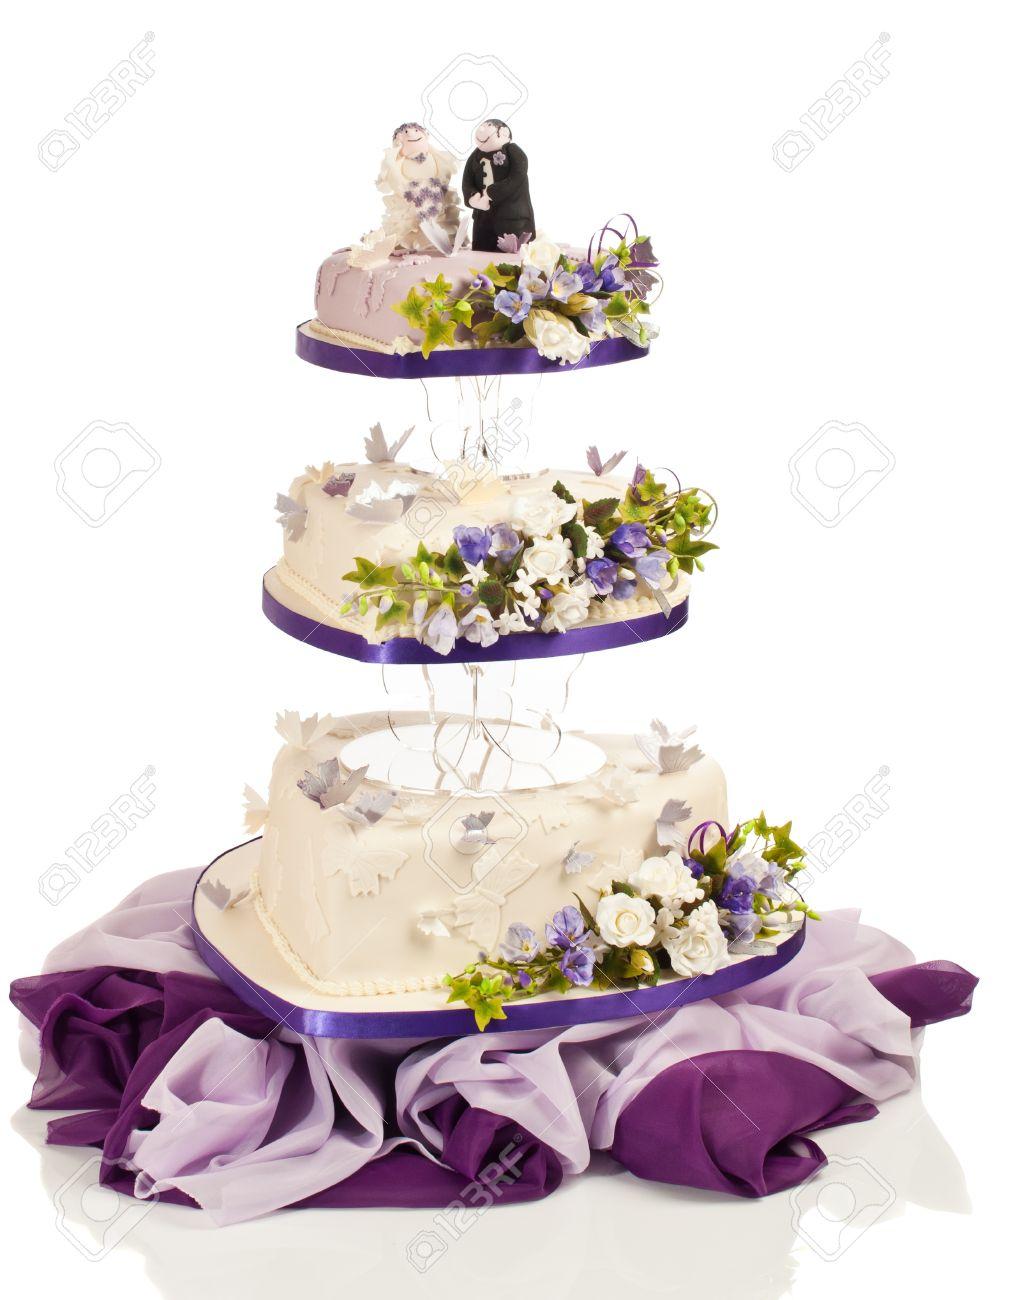 Heart Shaped Wedding Cake In Three Tiers With Flowers And ...